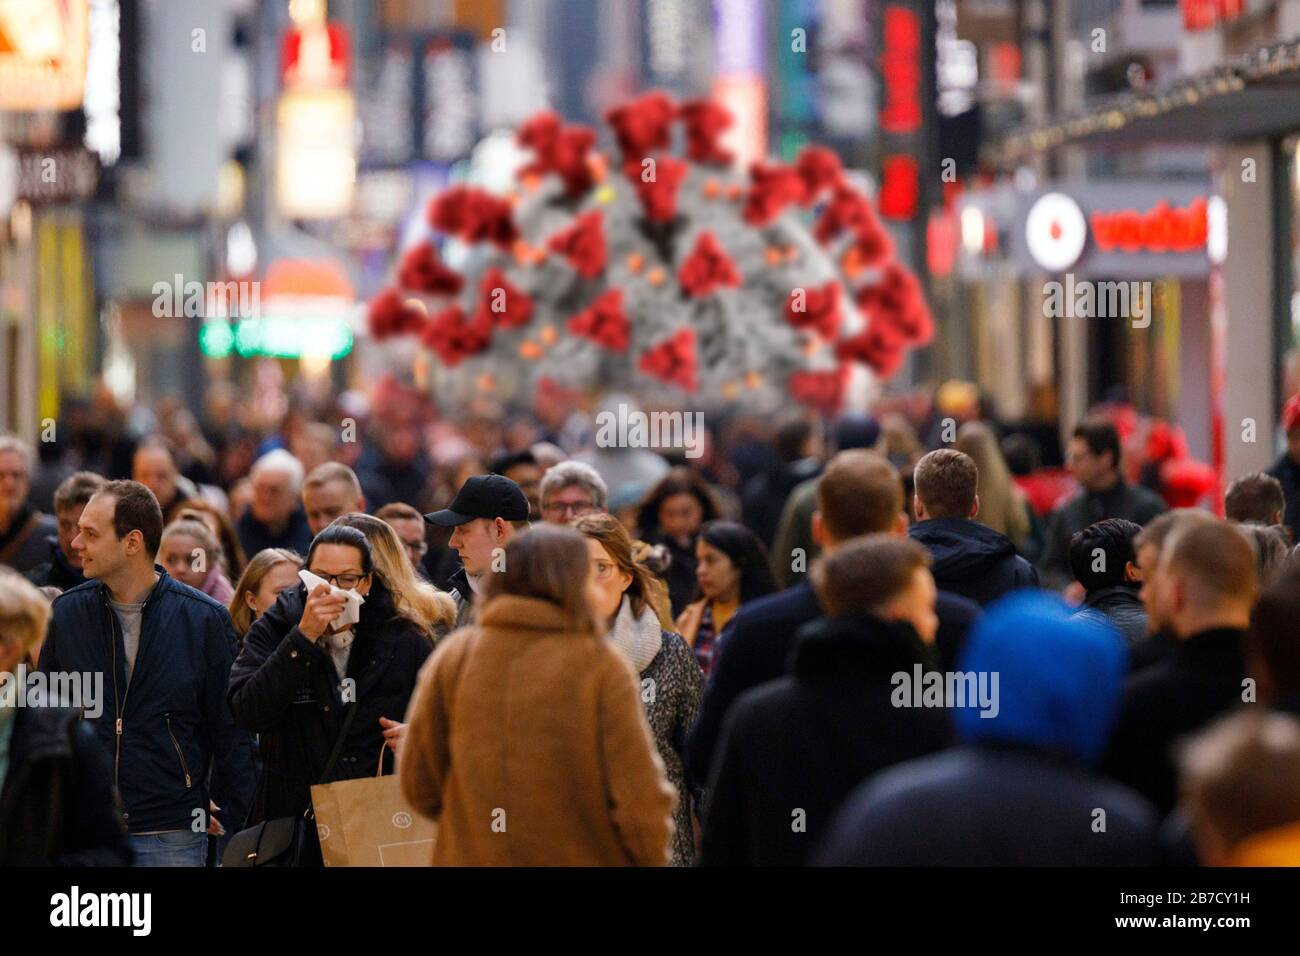 Corona cases in the population are increasing in North Rhine-Westphalia - in the picture the Cologne High Street (using a graphic from the CDC released under public domain). Stock Photo